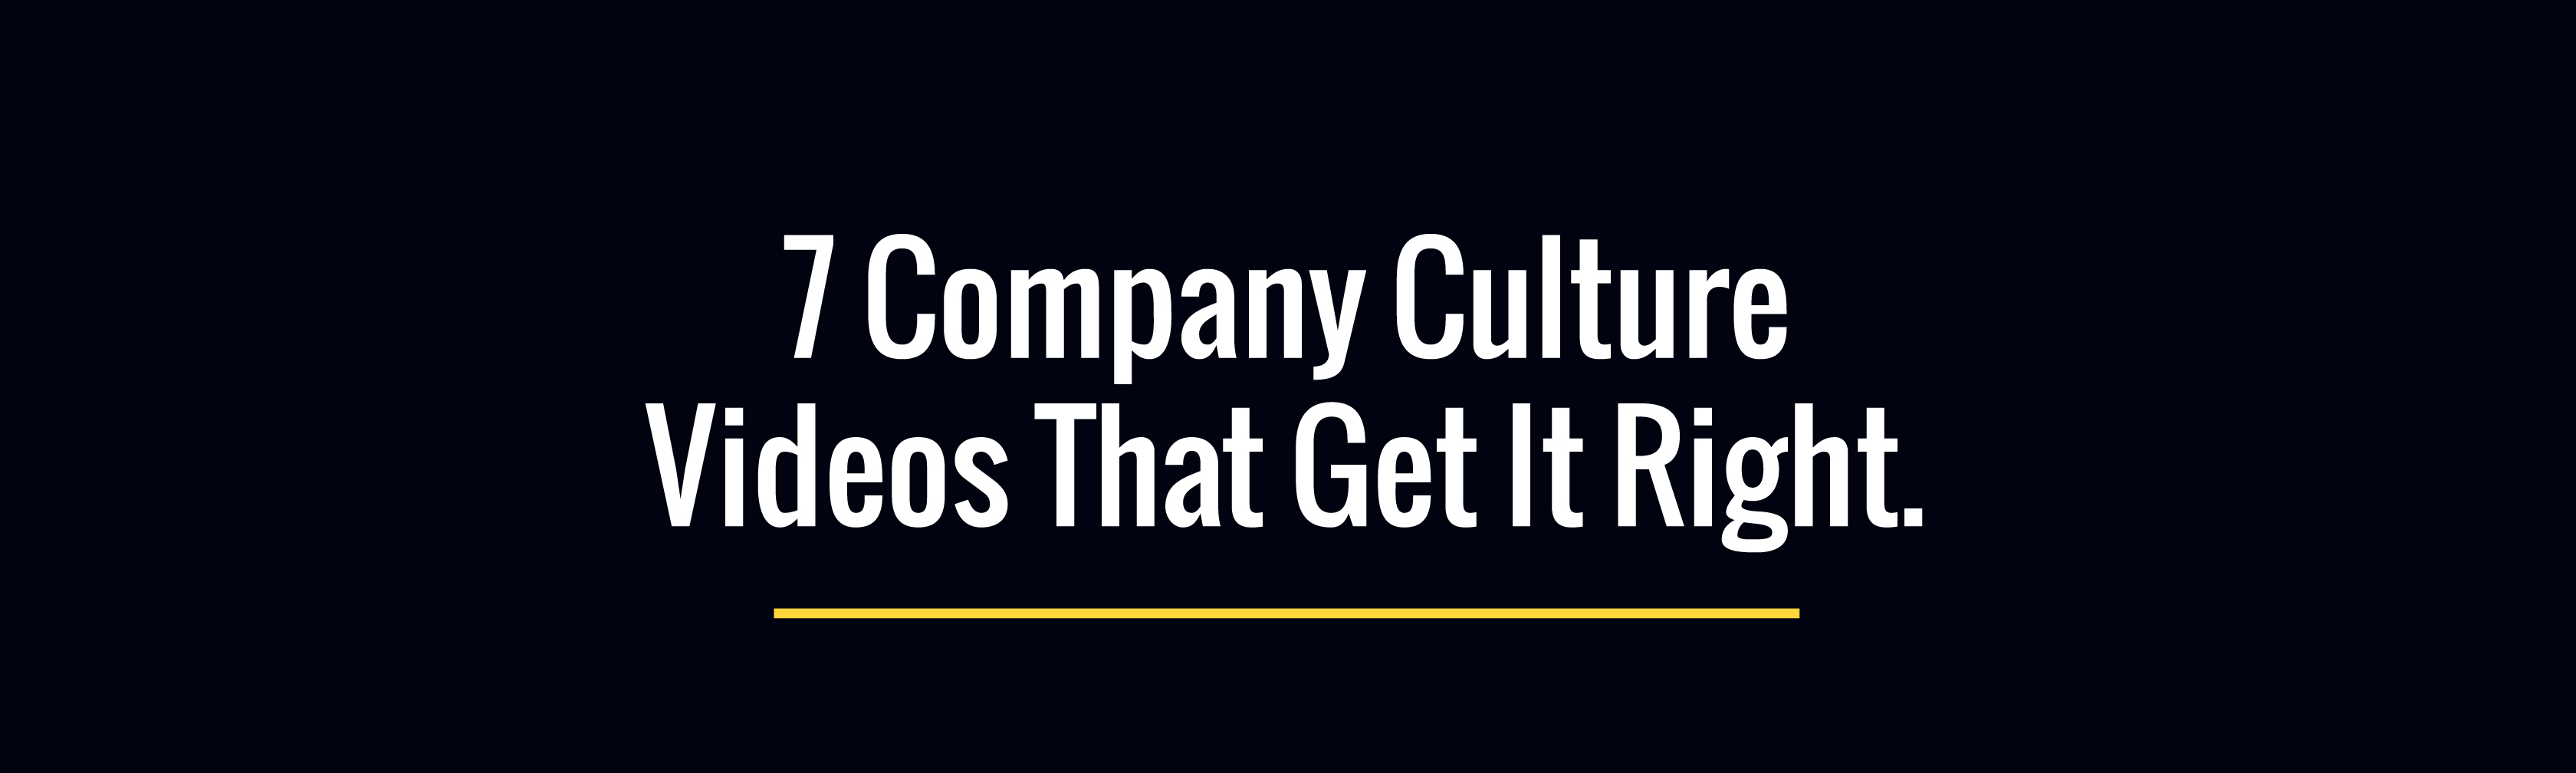 7 Company Culture Videos That Get It Right Biteable